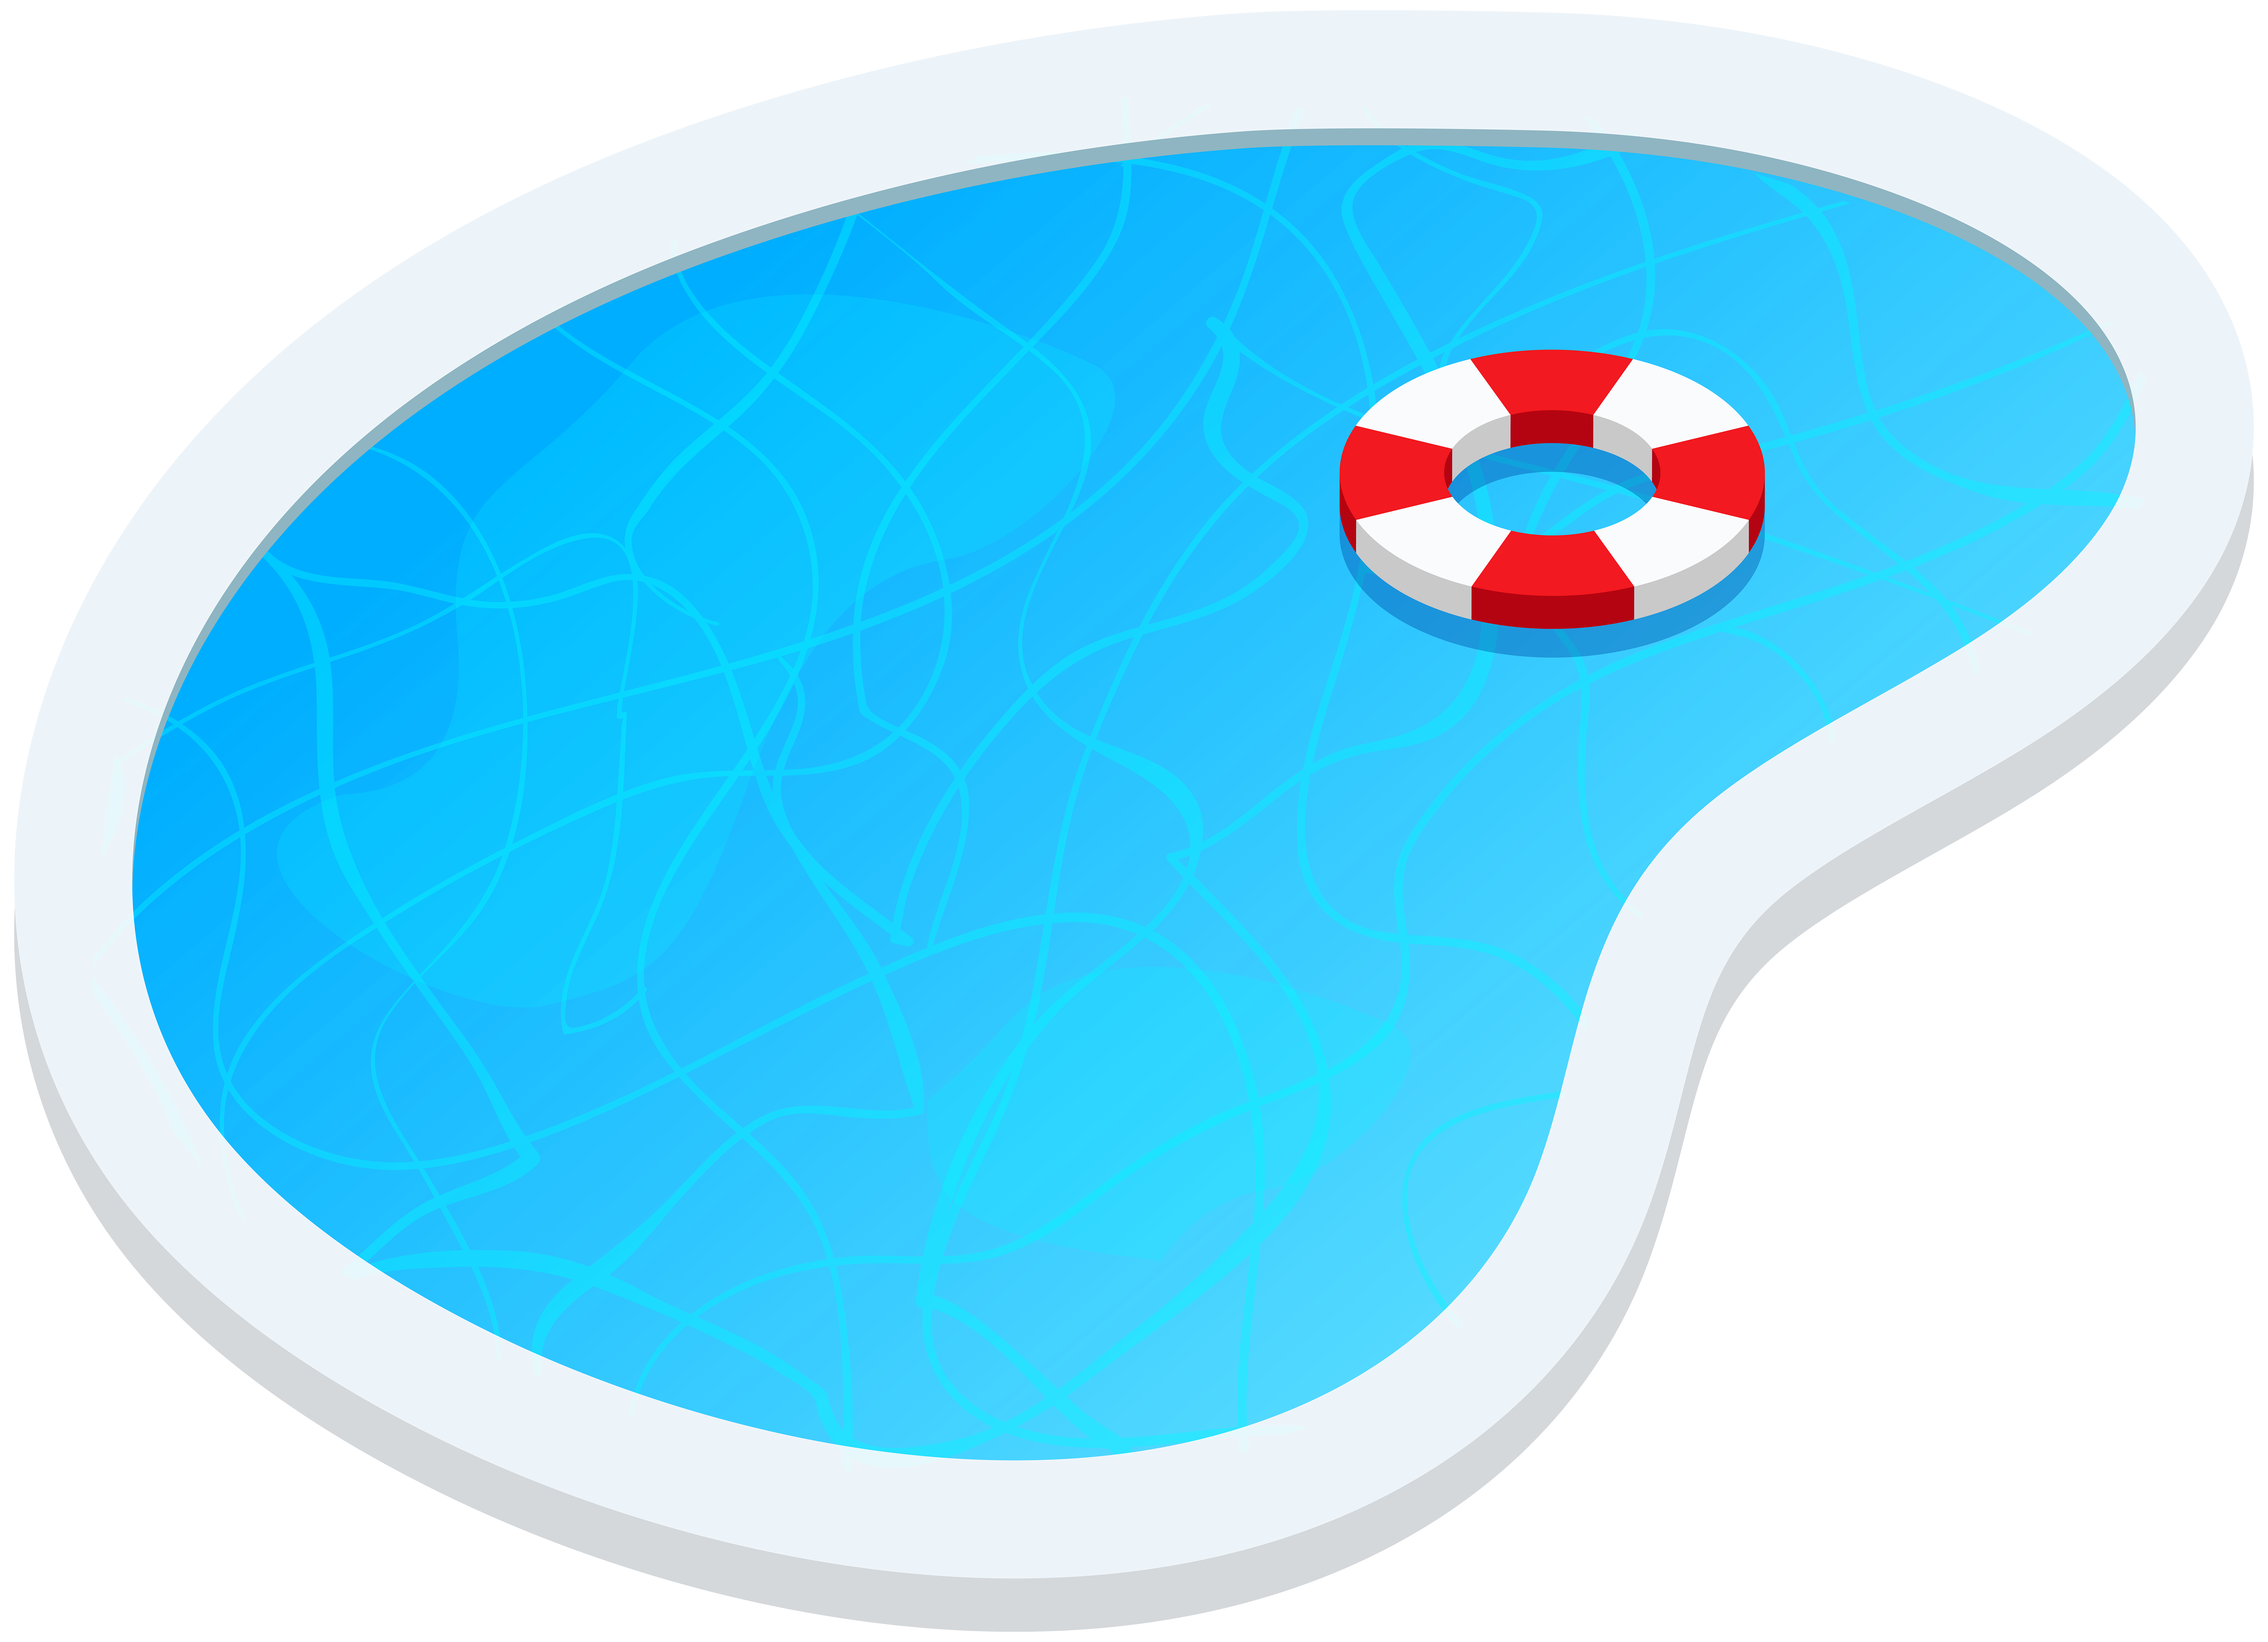 Clipart houses pool. Swimming oval png clip